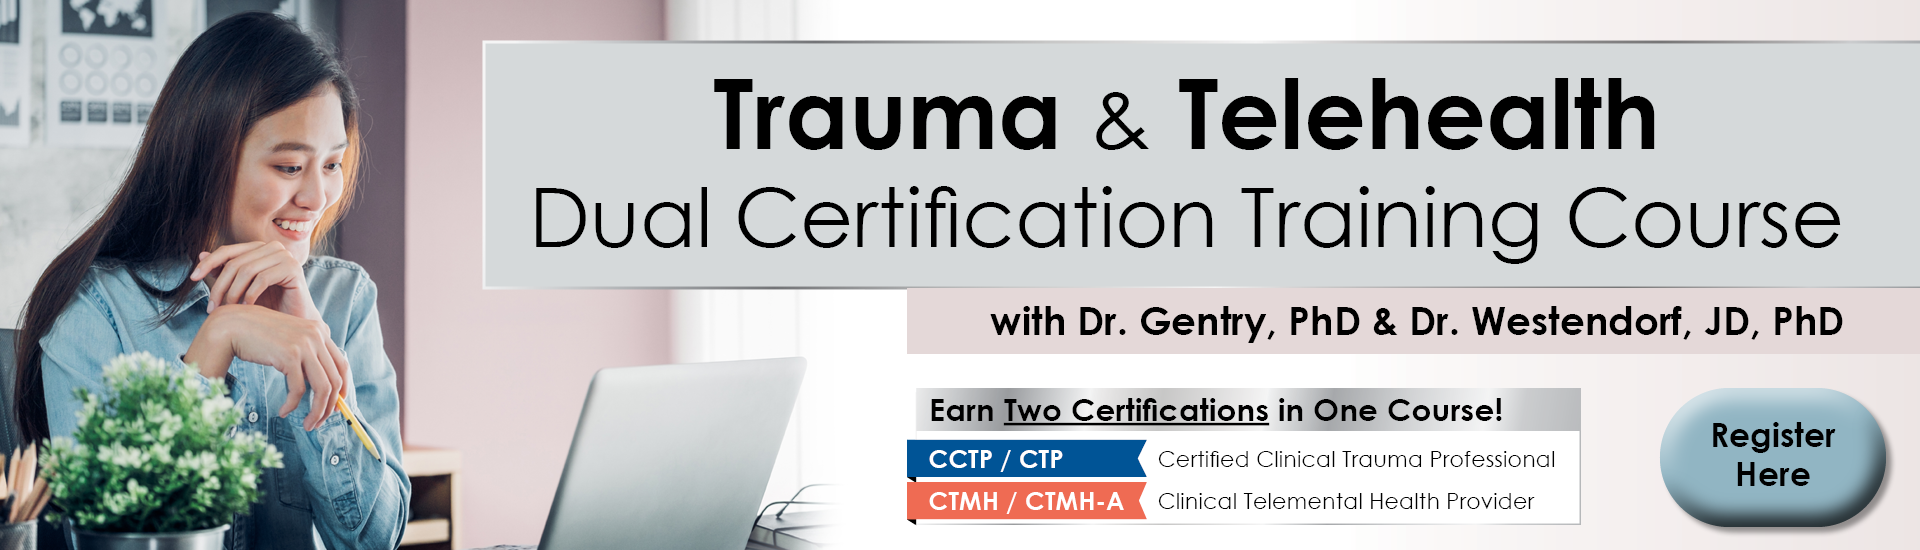 Trauma & Telehealth Dual Certification Course